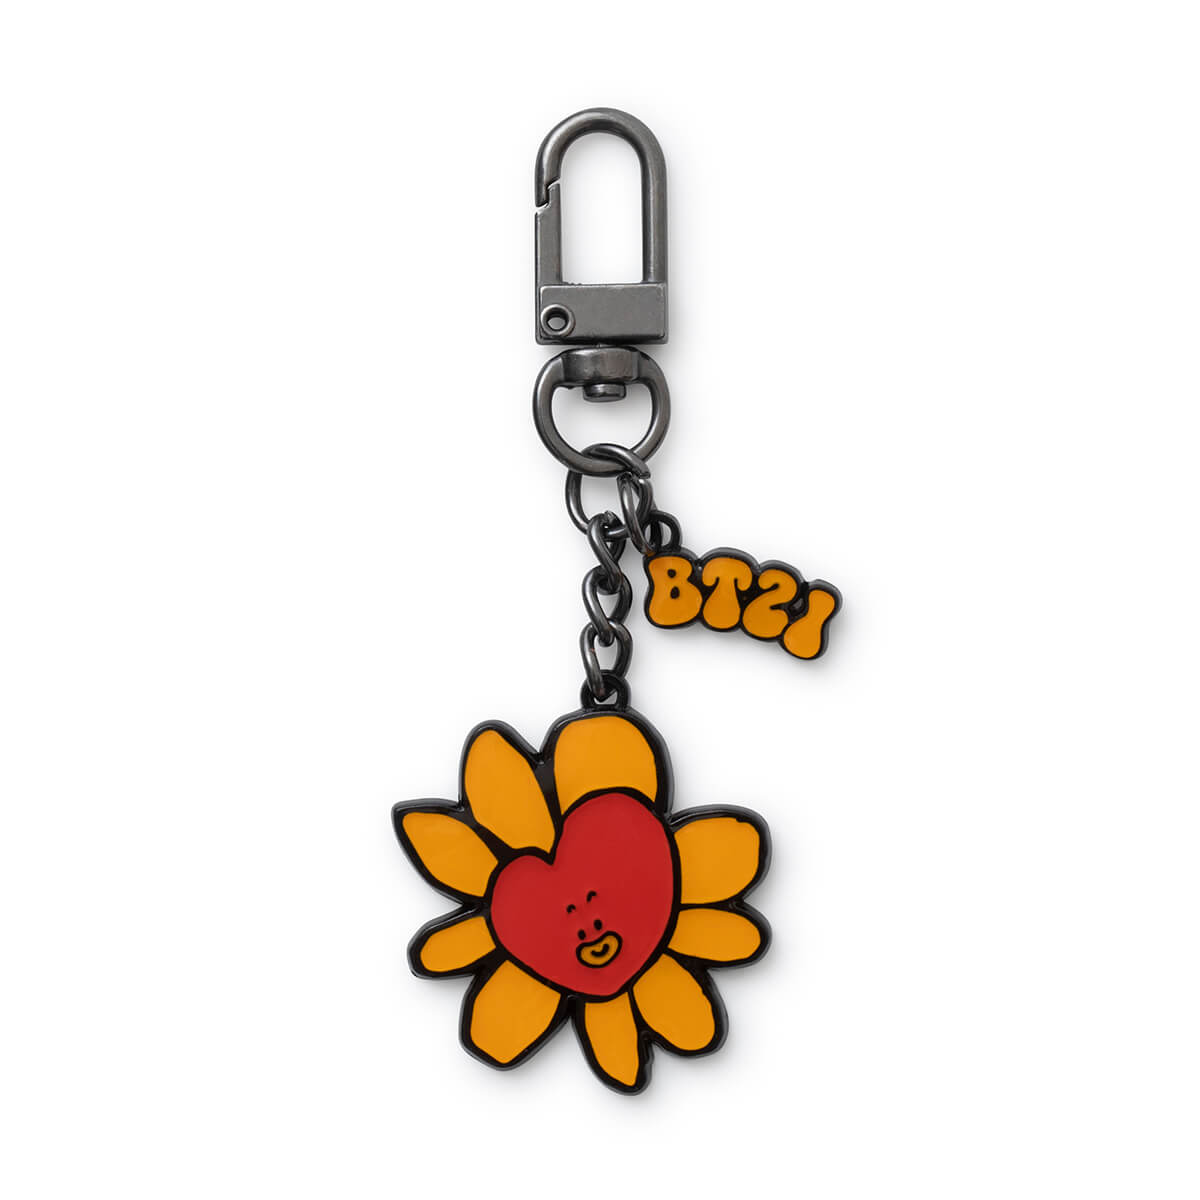 BT21 TATA Flower Metal Keyring